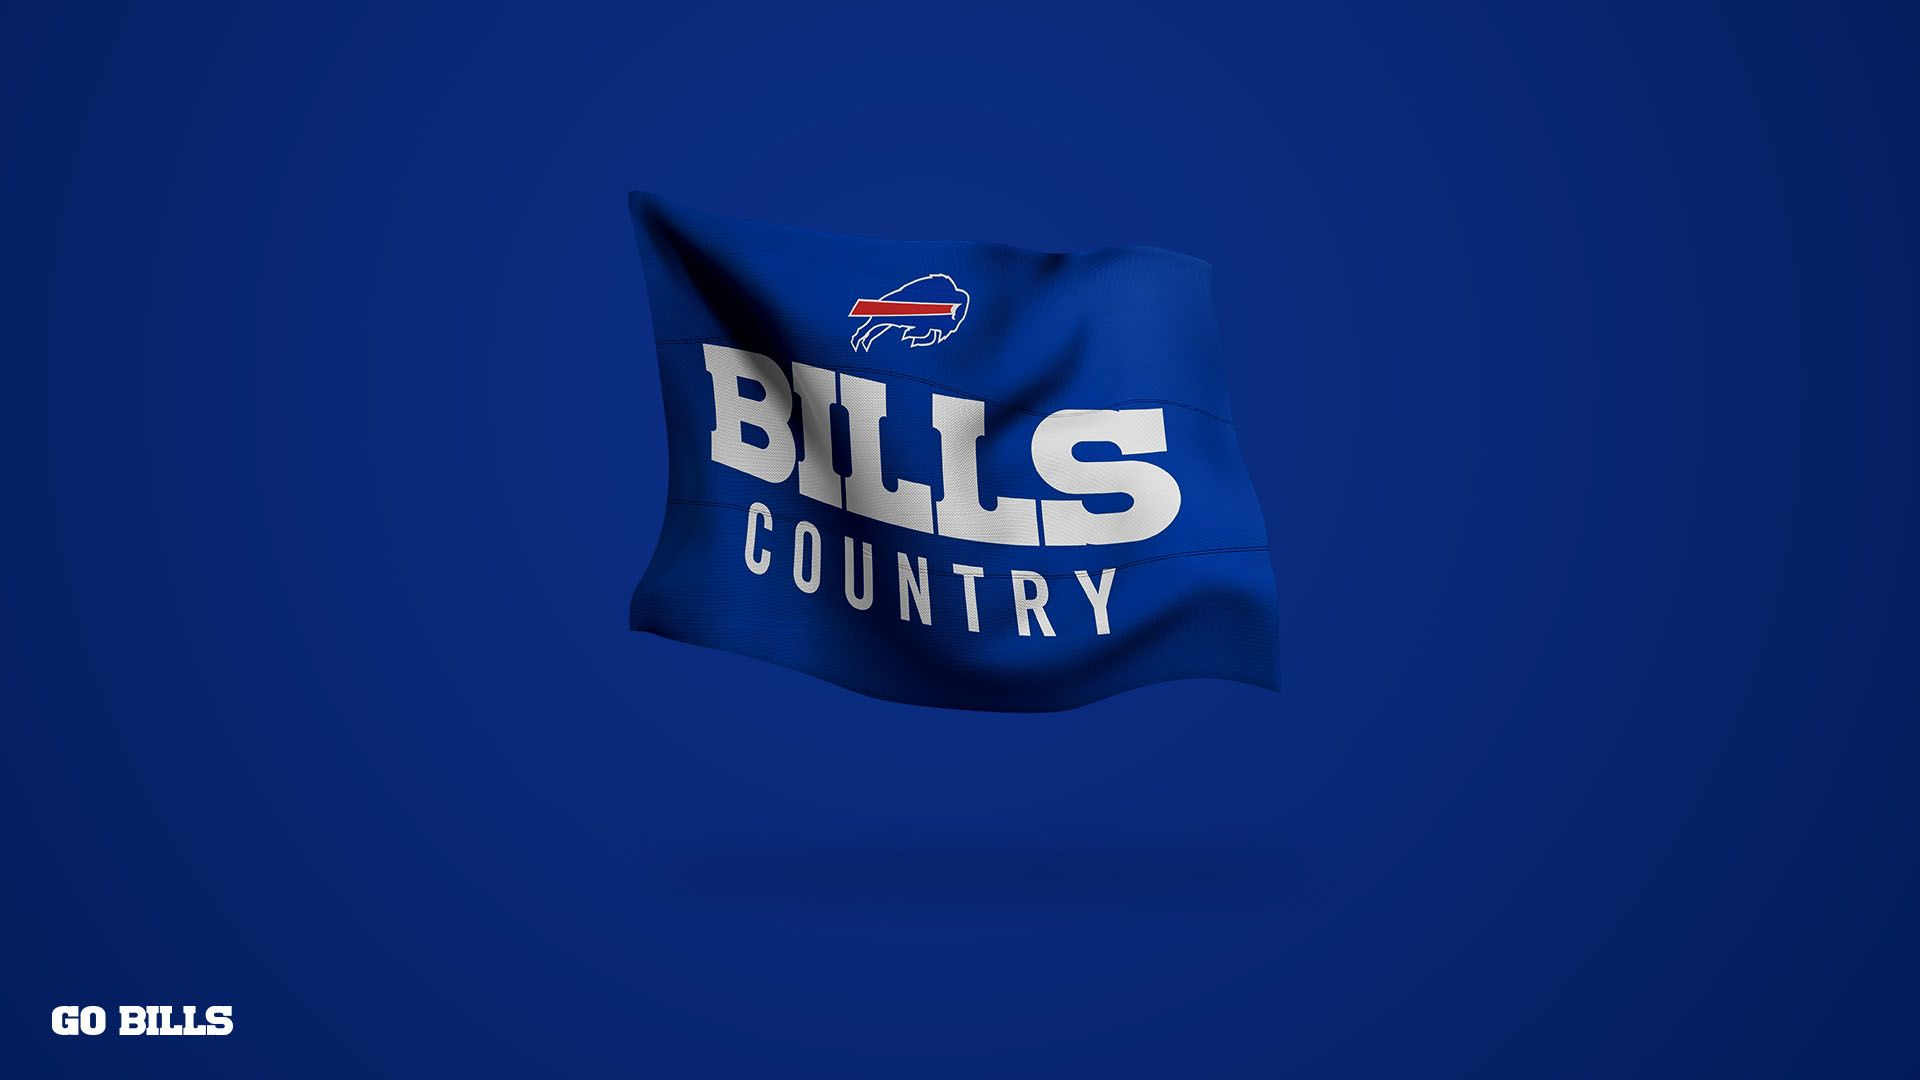 Buffalo Bills Wallpapers Buffalo Bills Buffalobills Com